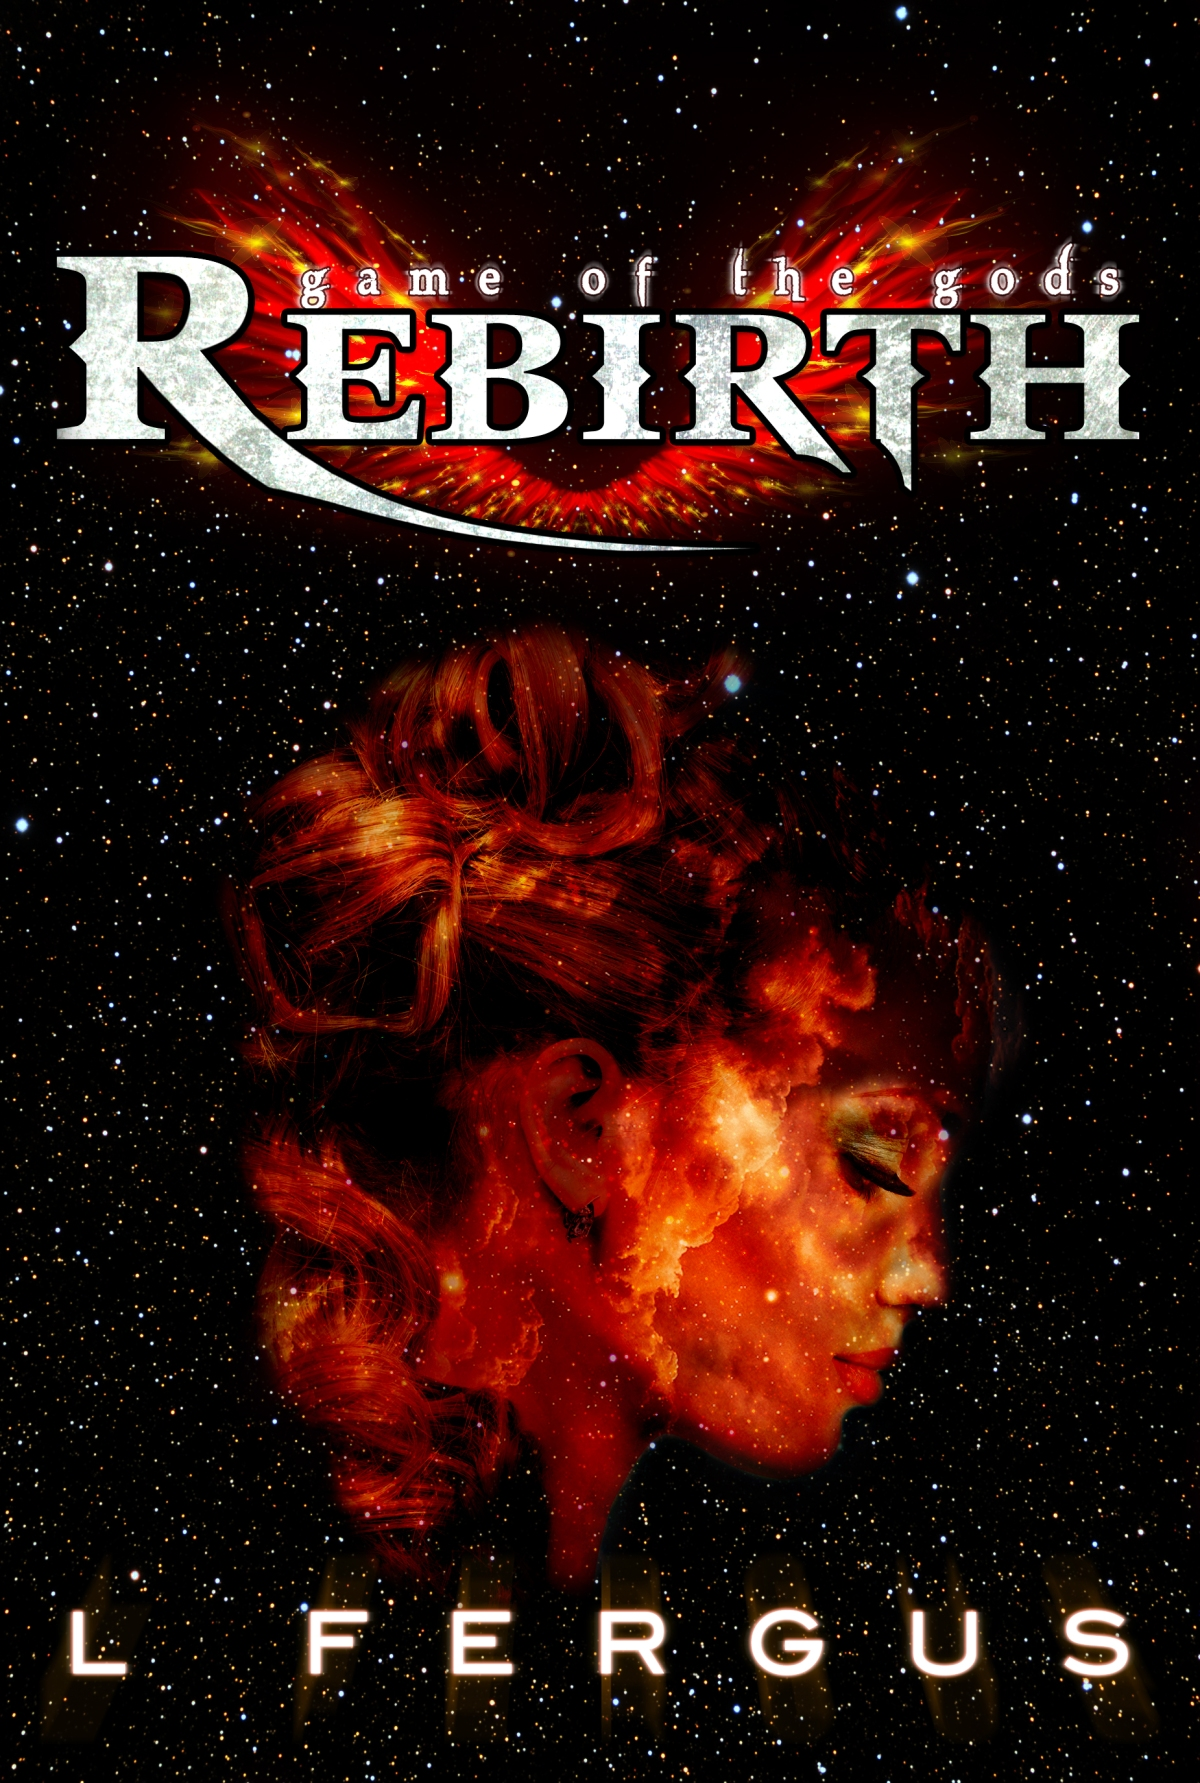 Chapter One of REBIRTH audiobook available!